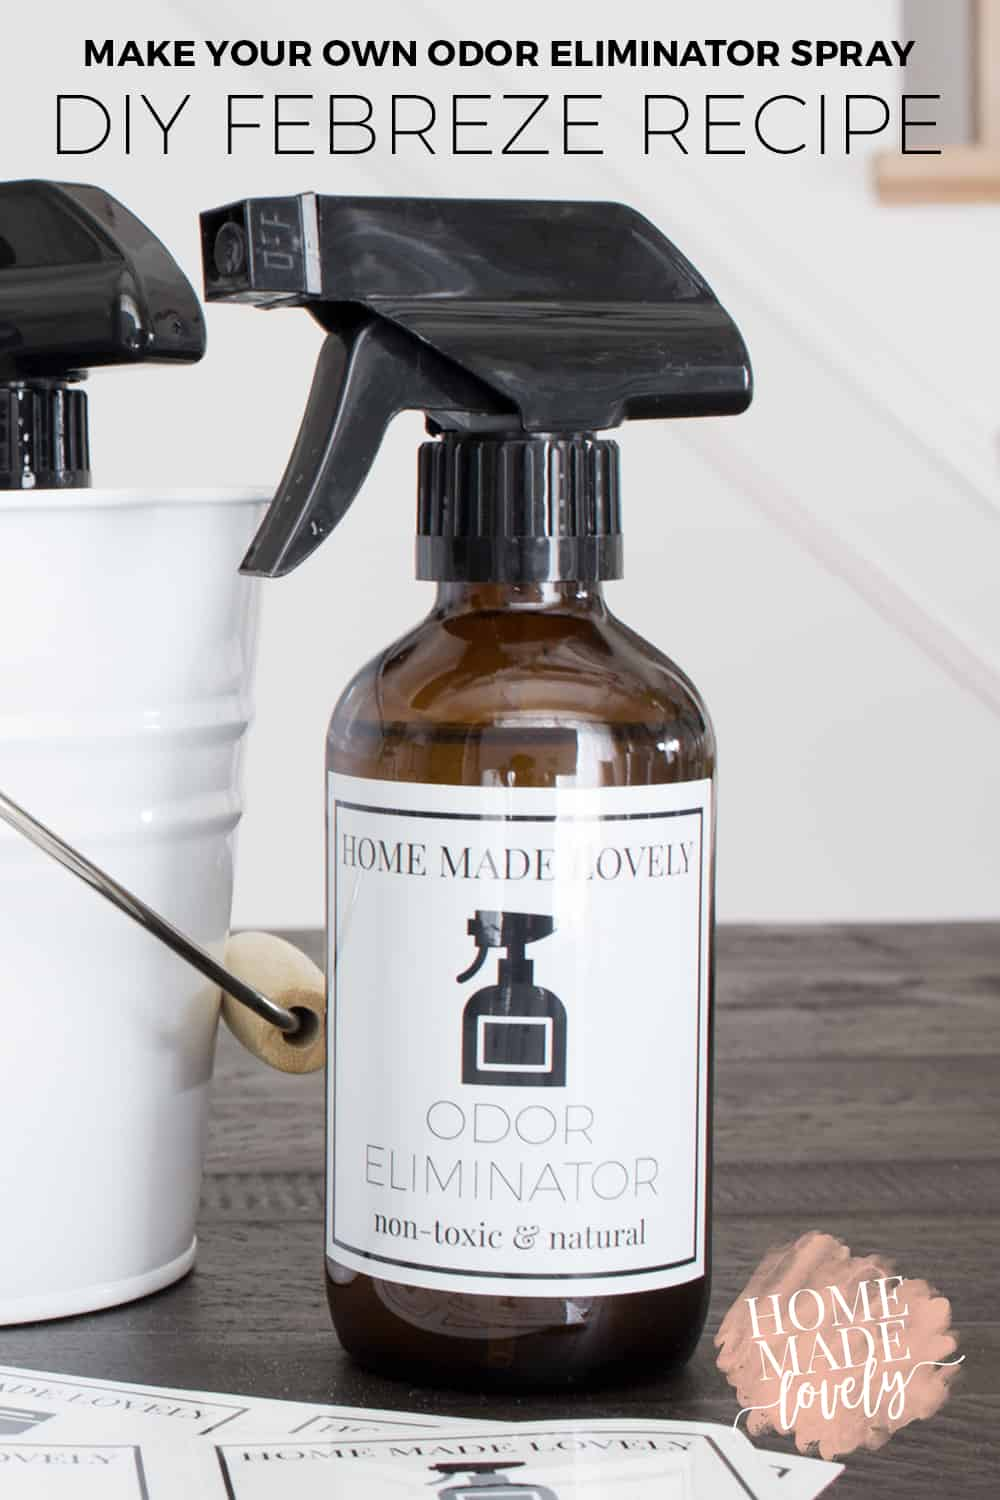 Stinky teenagers? Smelly sports equipment? Here's how to make your own odor eliminator spray or DIY Febreze recipe!